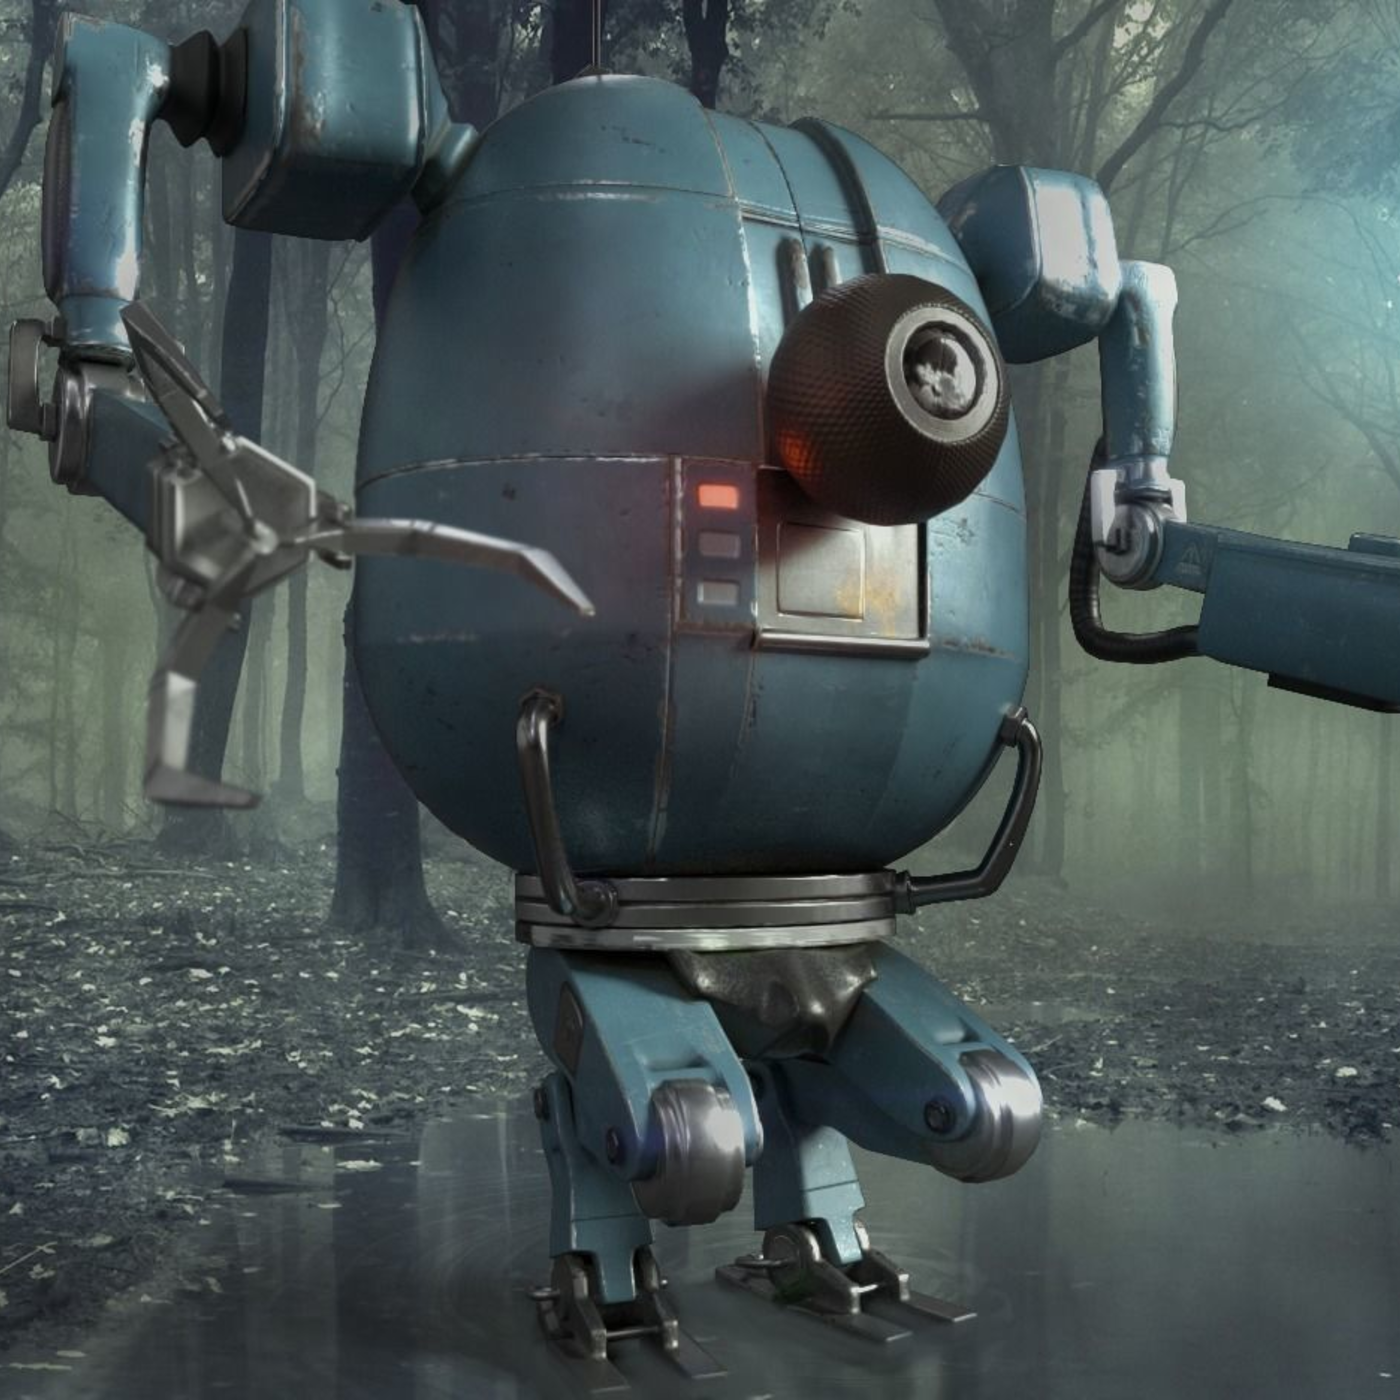 PBR Robot - from personal concept